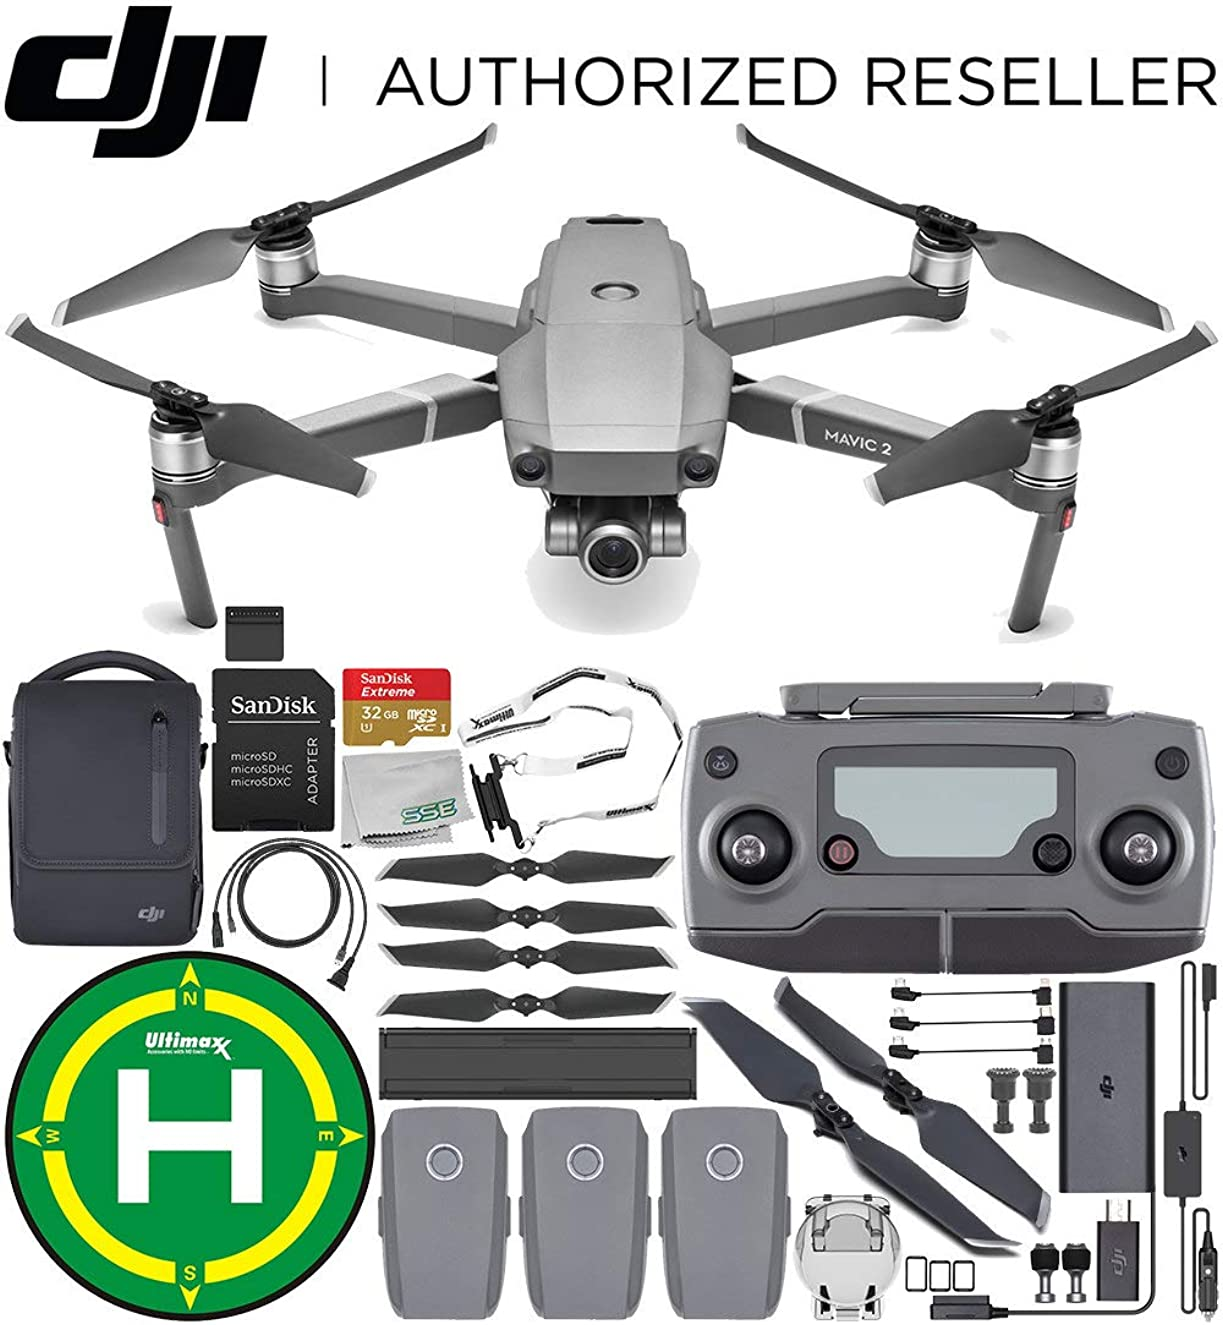 DJI Mavic 2 Zoom Drone Quadcopter with 24-48mm Optical Zoom Camera with Fly More Kit Combo Landing Pad Bundle